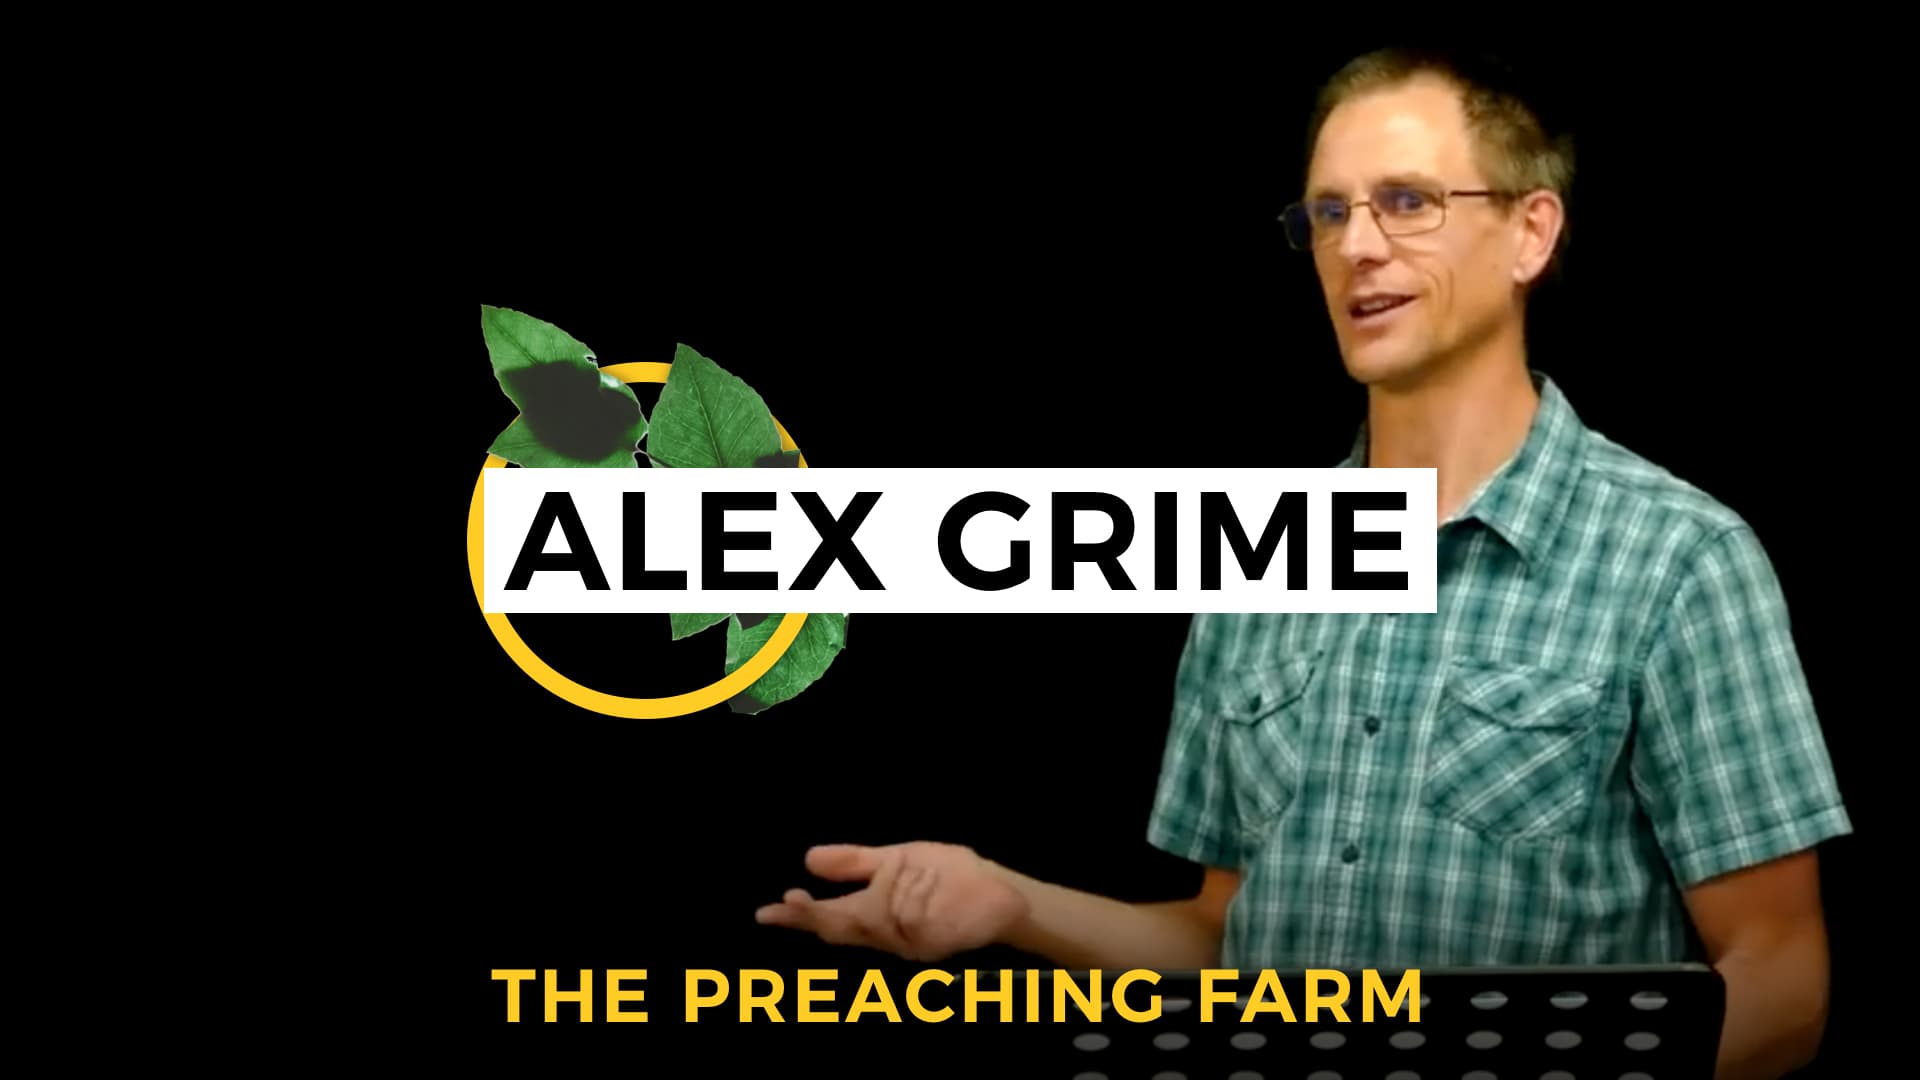 The Preaching Farm 1: Alex Grime